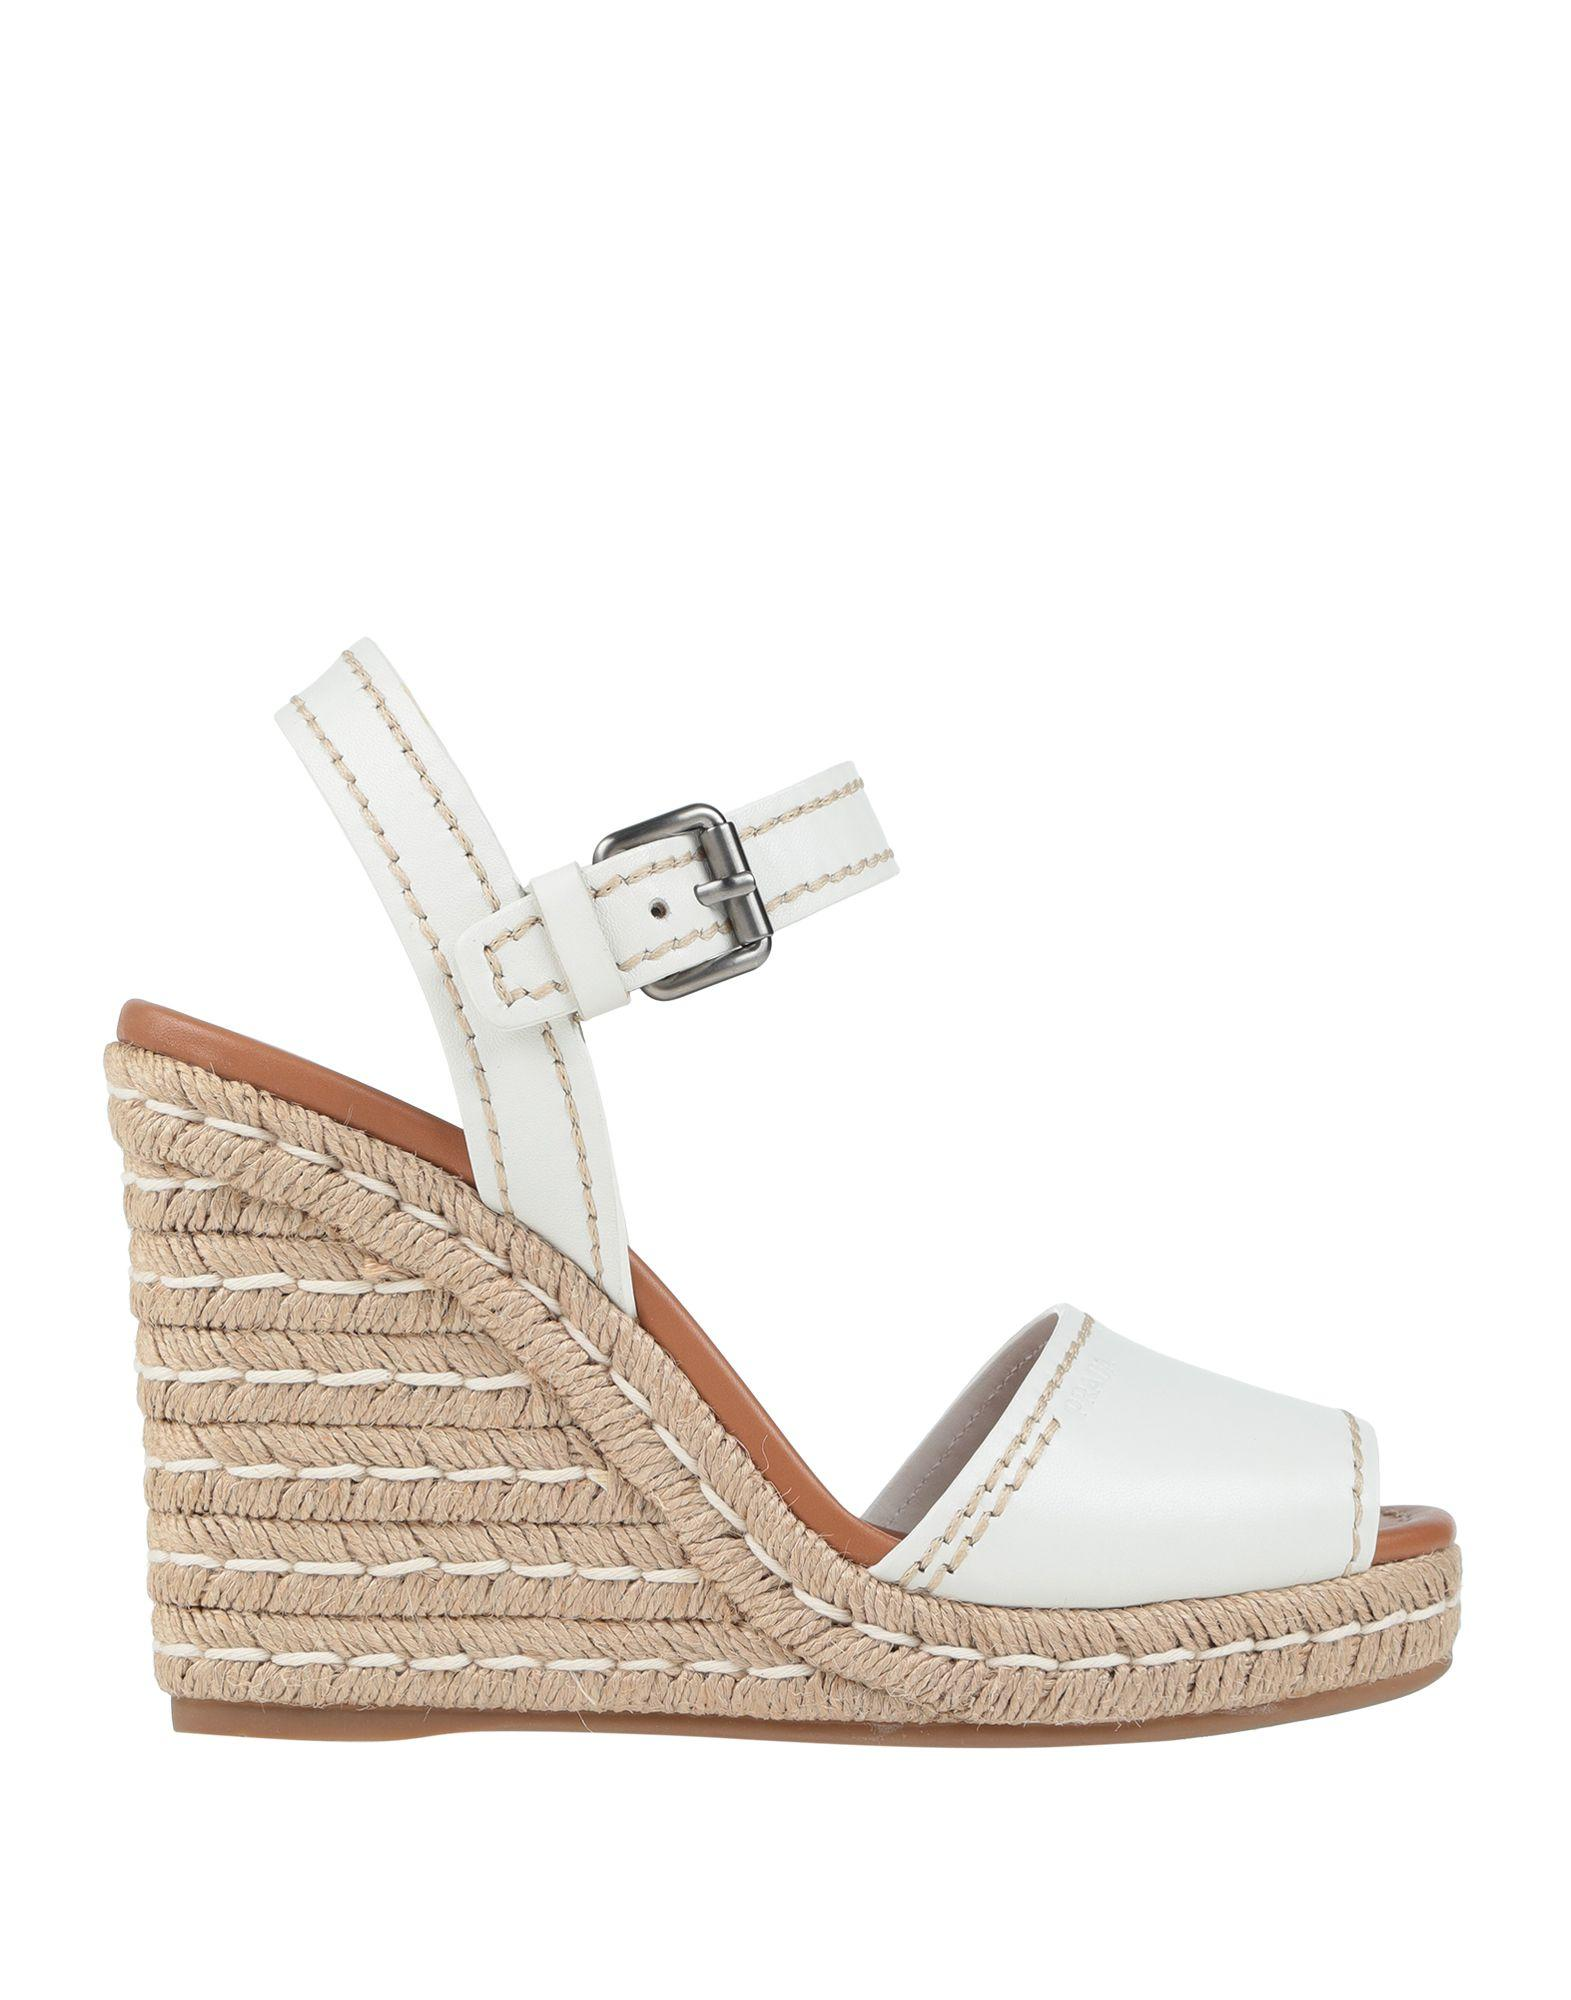 3cf2daad895f2 Prada Sandals in White - Lyst